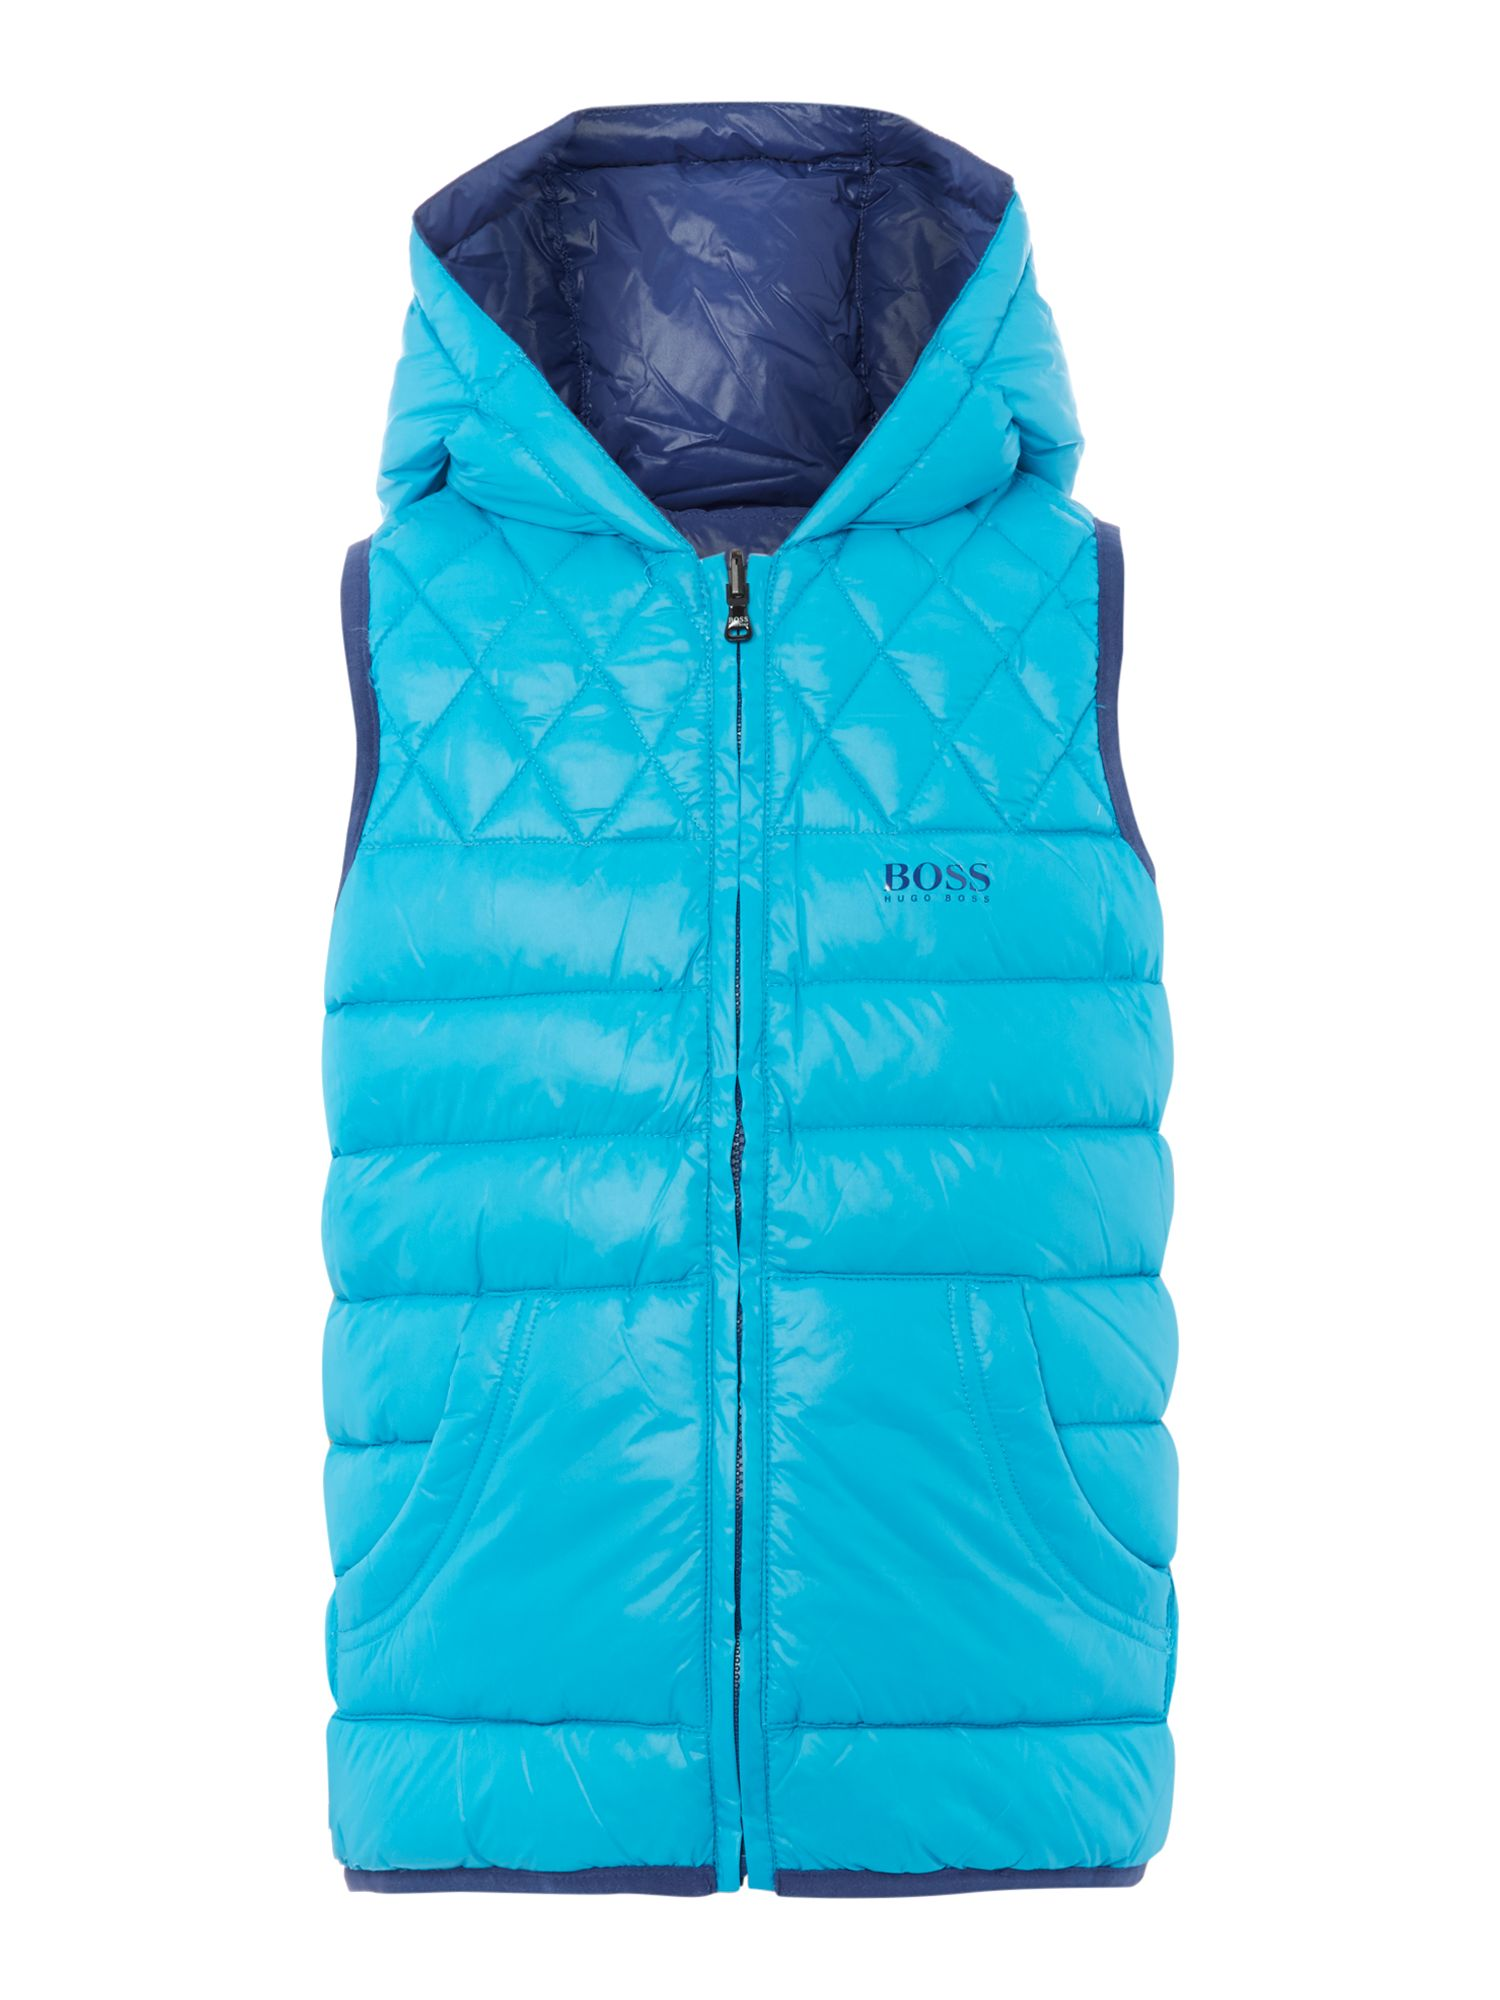 Boys reversible sleeveless down jacket